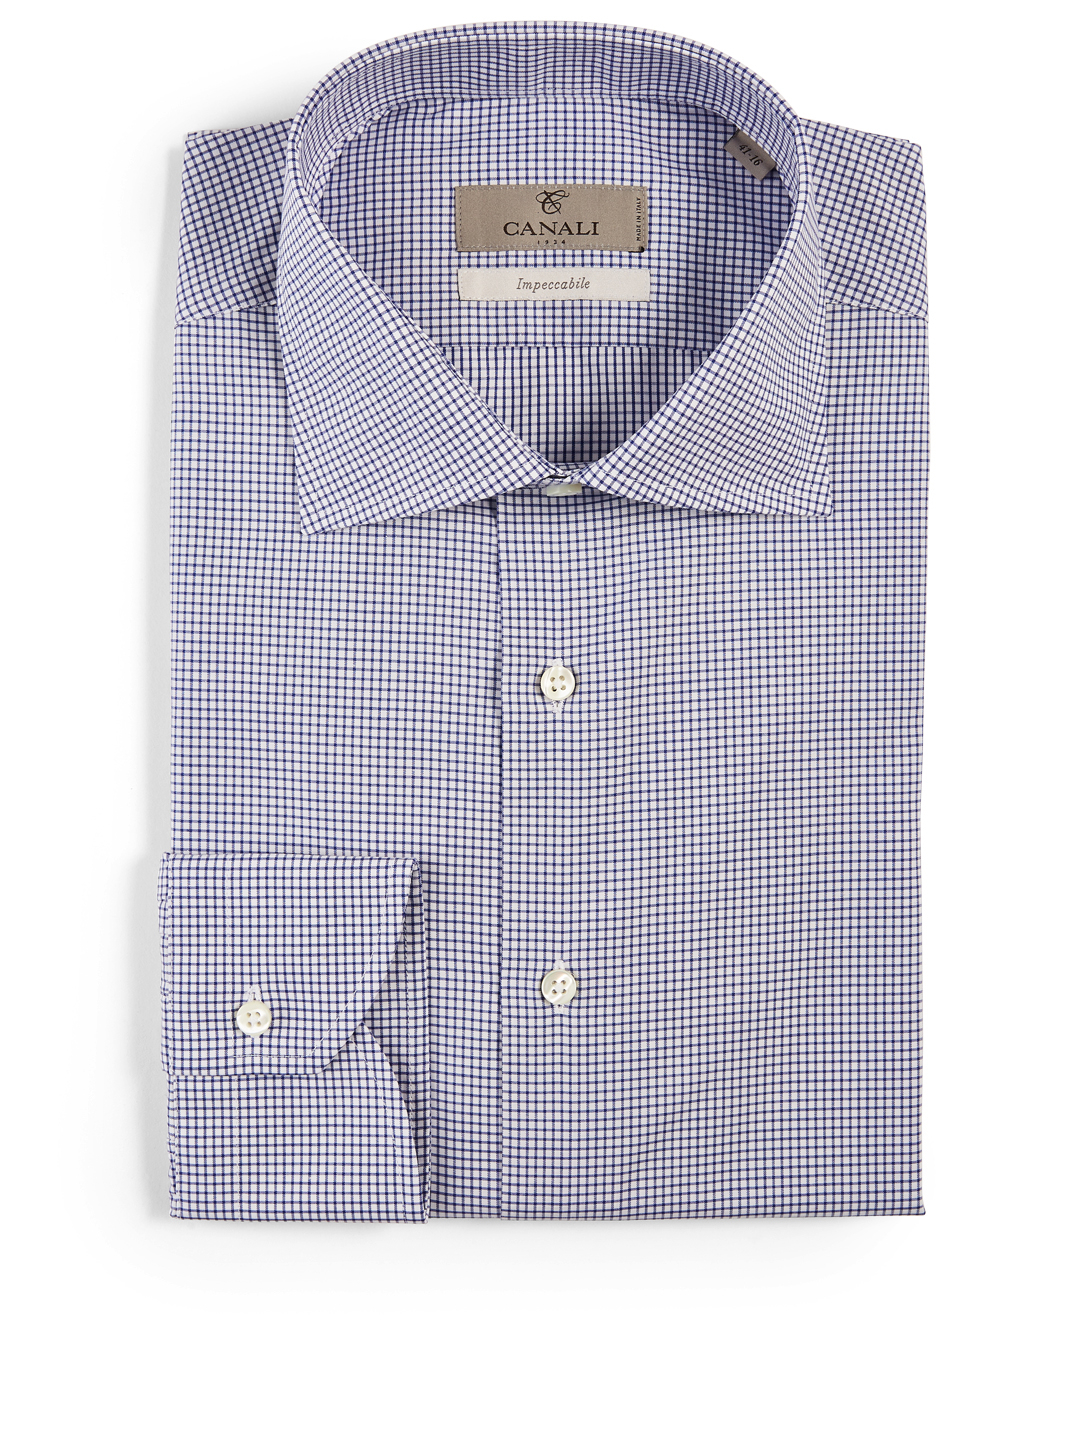 CANALI Cotton Shirt In Mini Grid Print Men's Blue